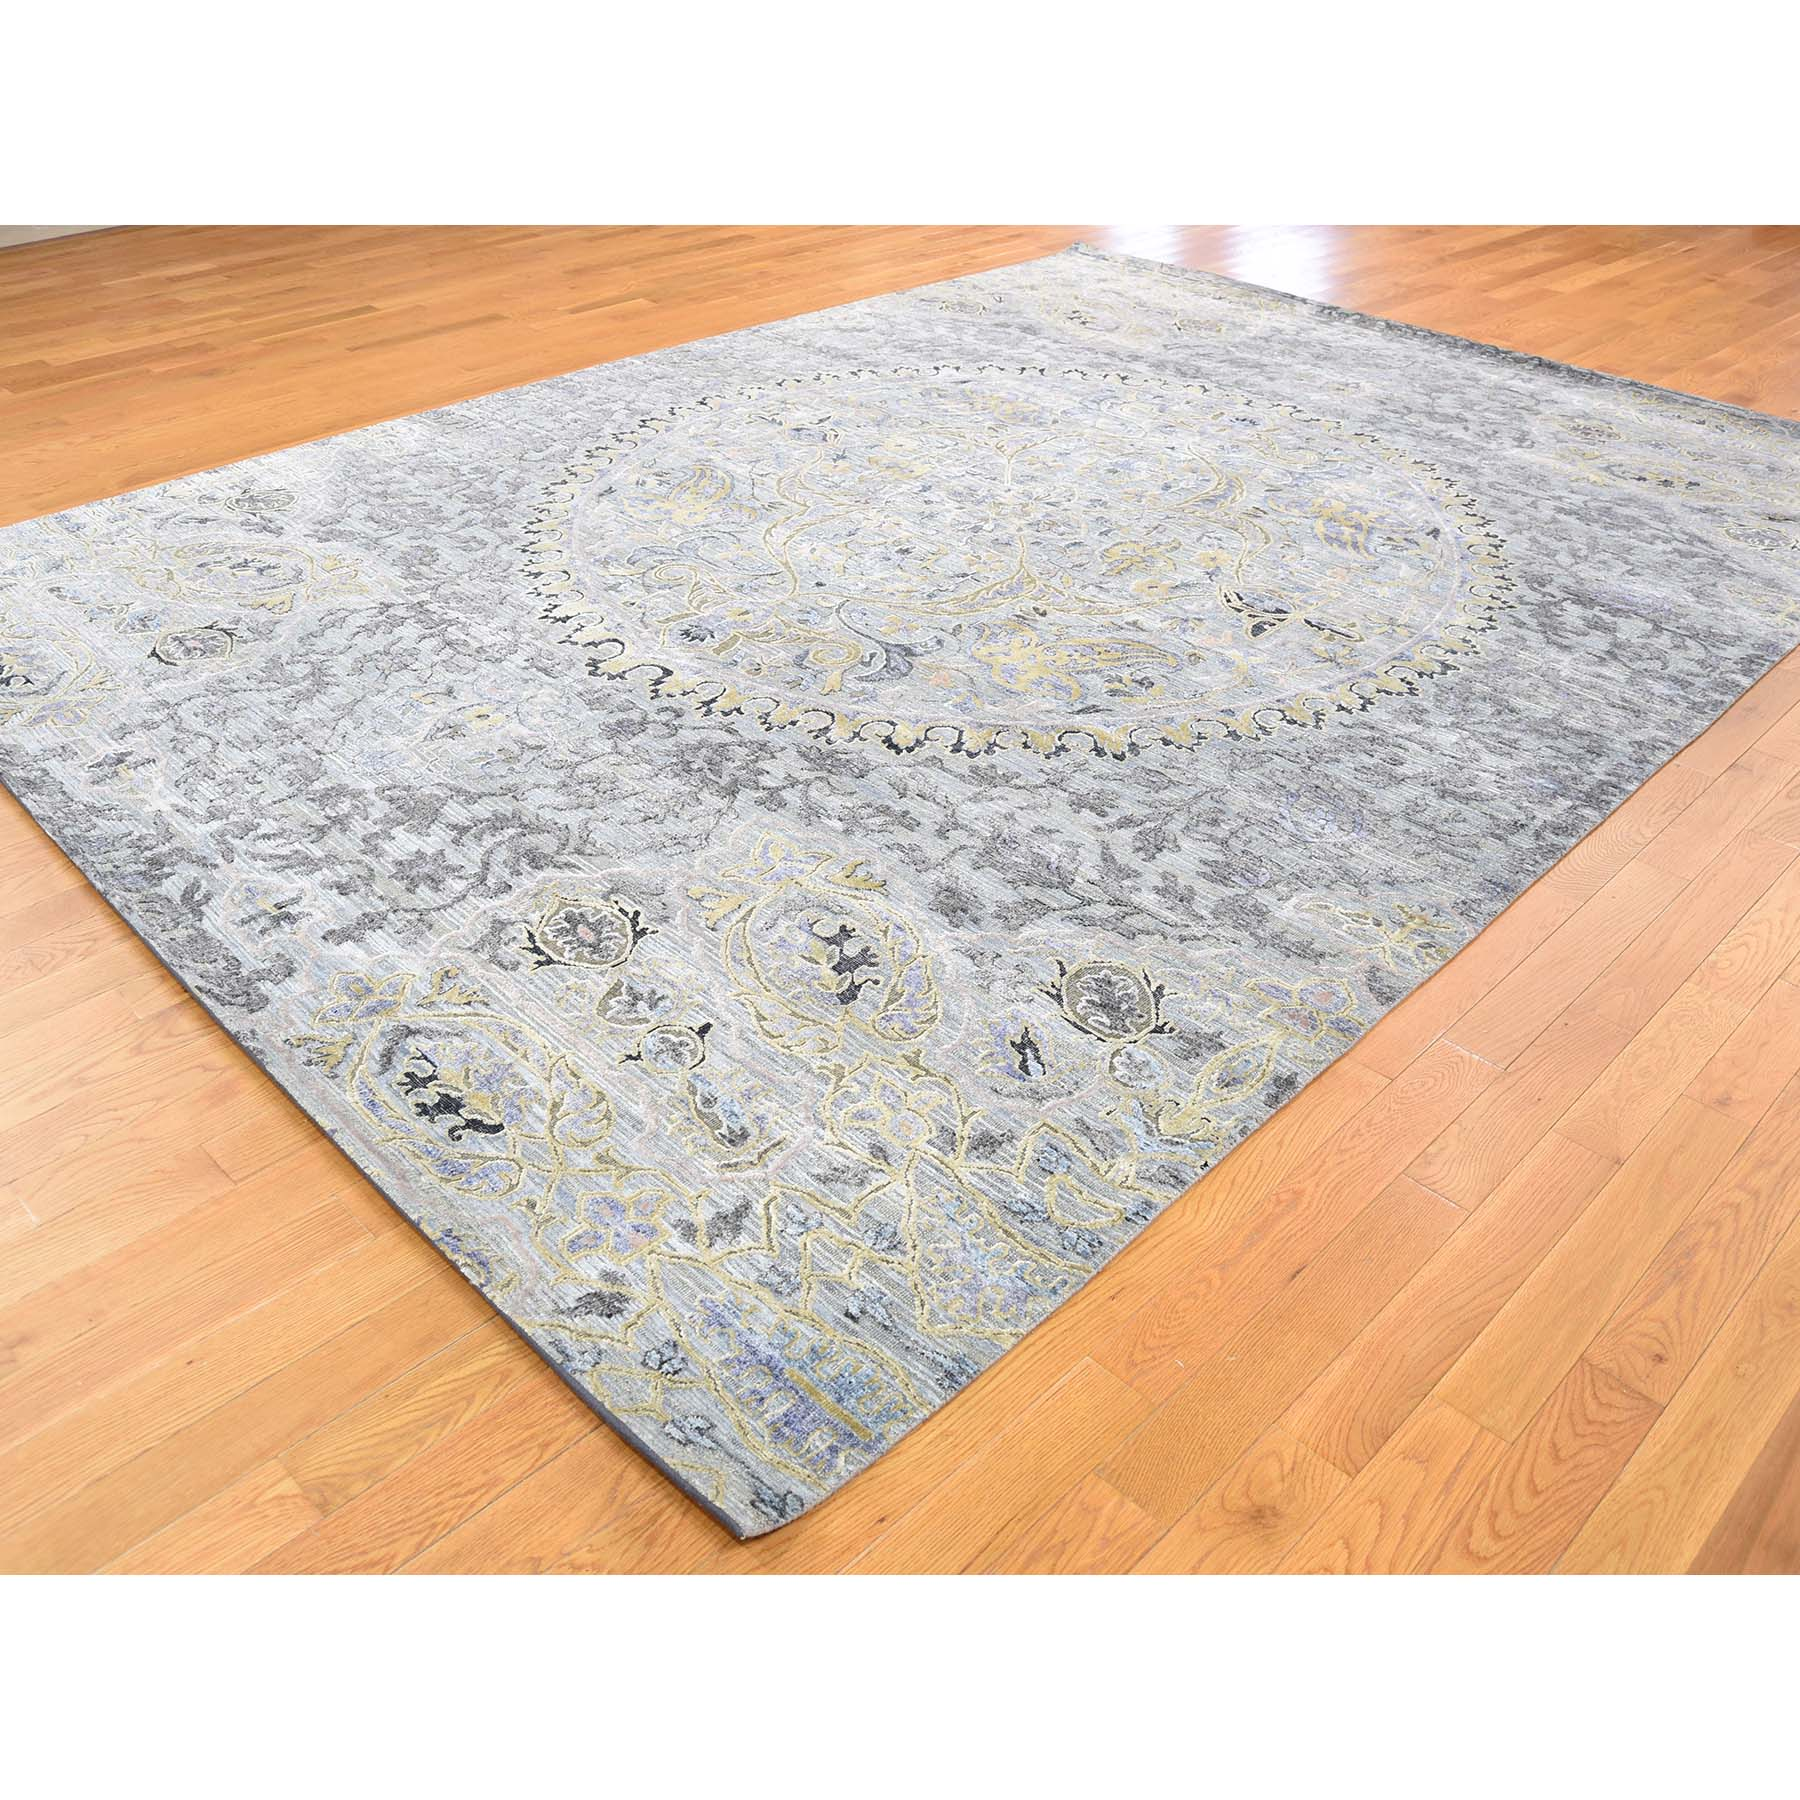 9 x12 THE MAHARAJA Silk with Textured Wool Hand Woven Oriental Rug